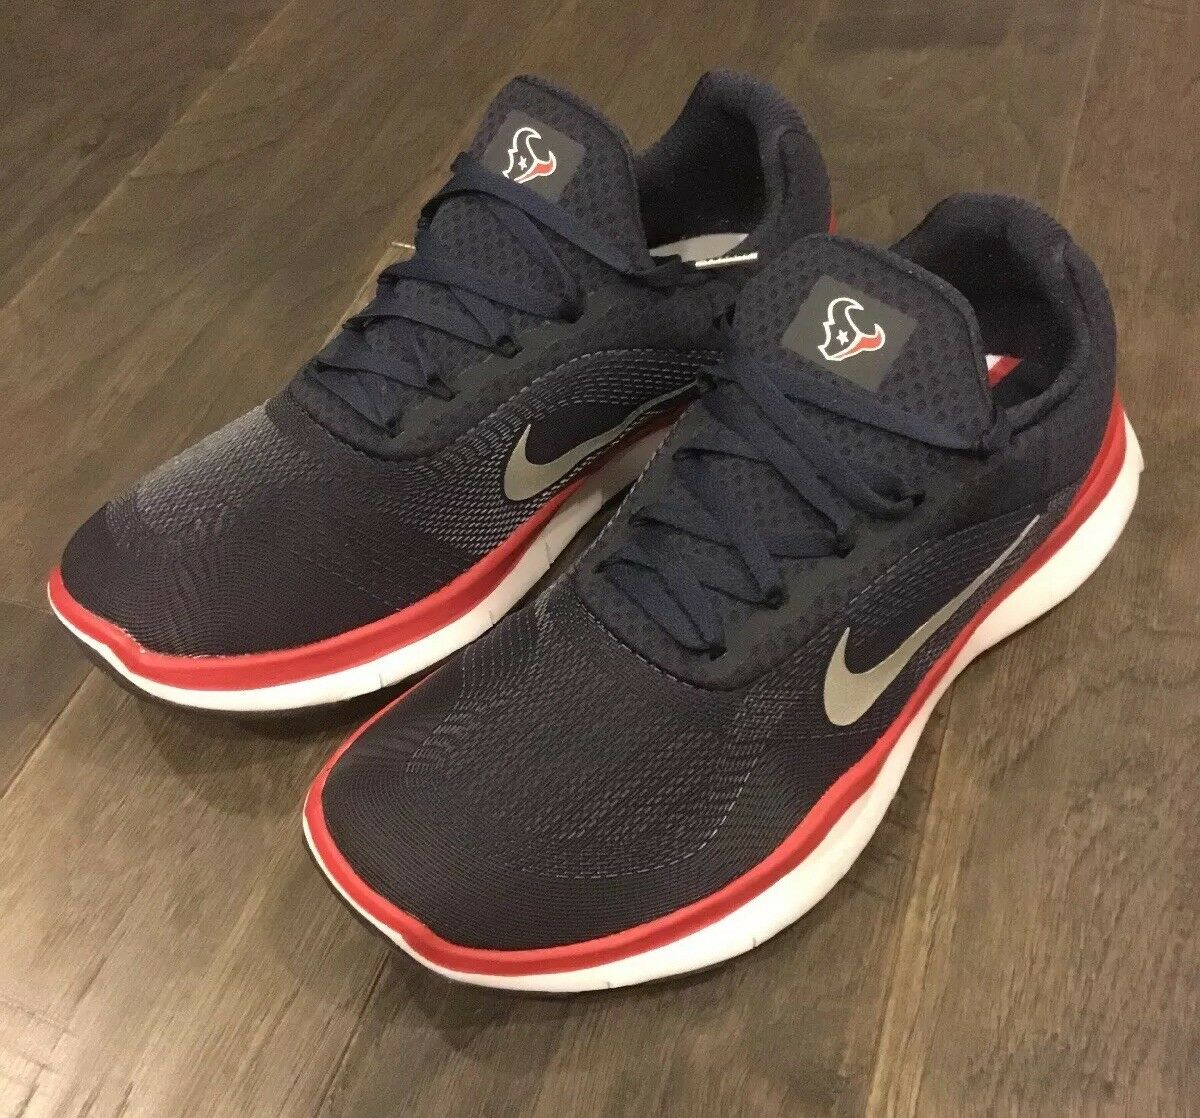 Houston Texans Nike Free Trainer V7 NFL shoes Sneakers Men's AA1948 403 Sz 13